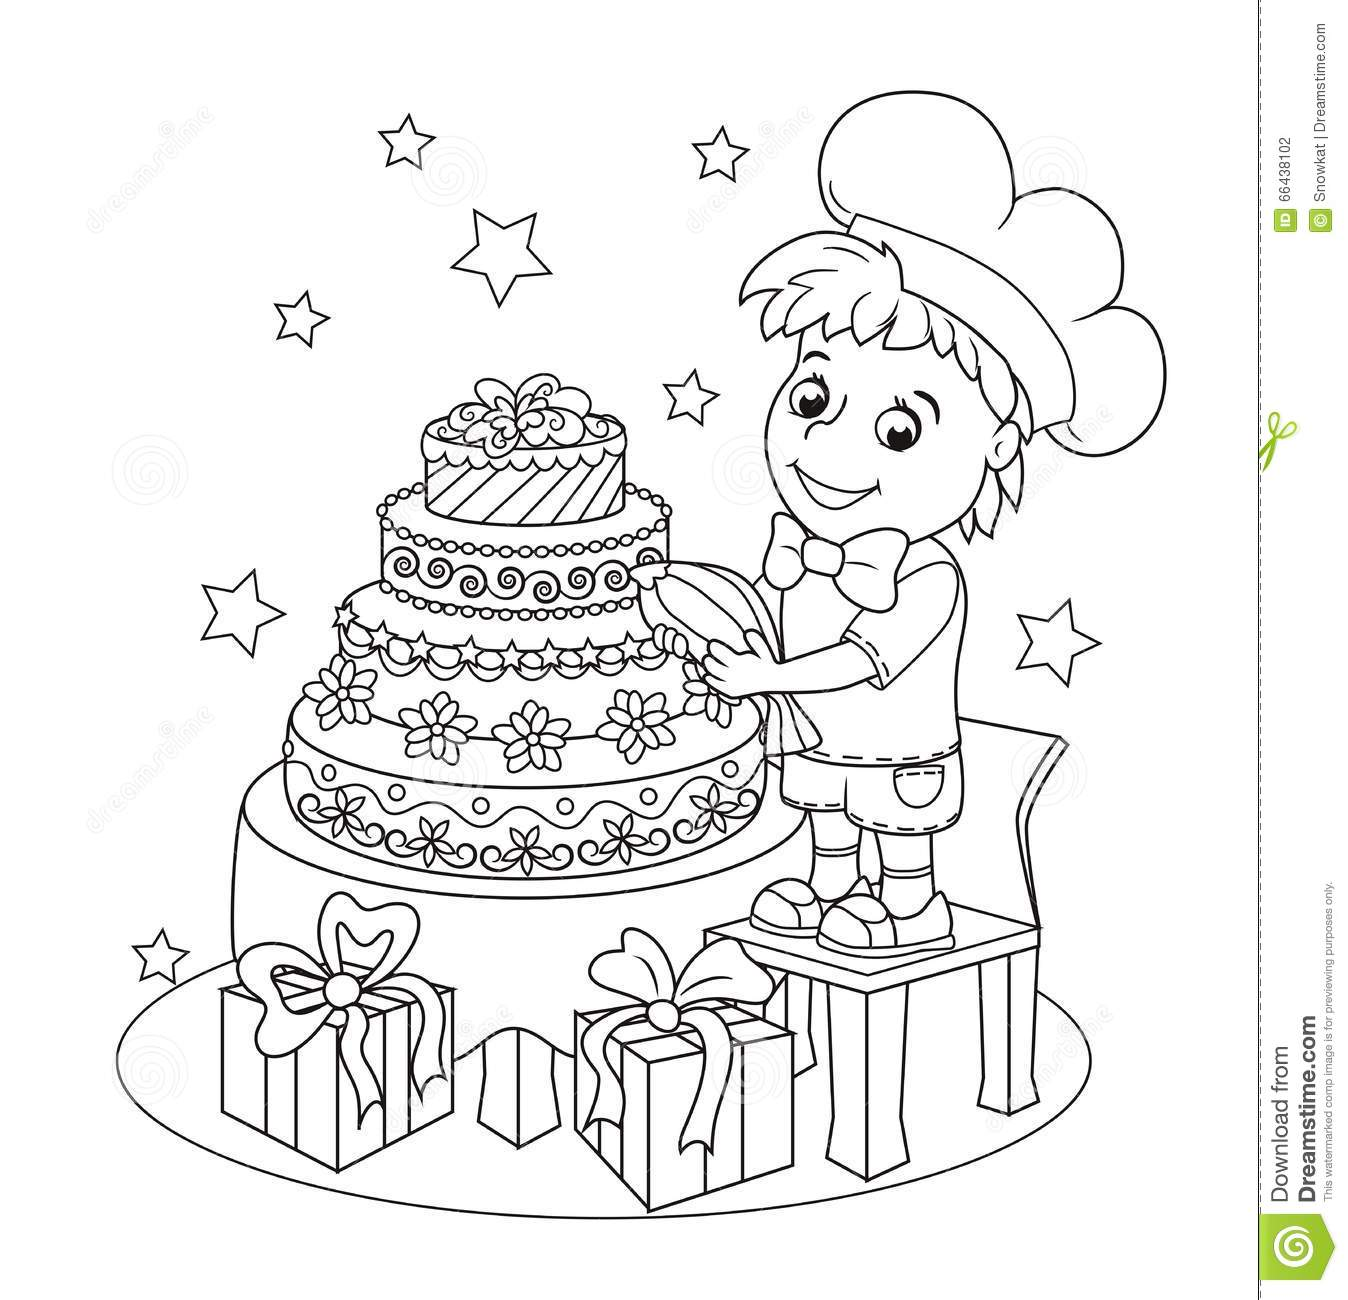 Little Cute Pastry Chef The Book Coloring Stock Illustration